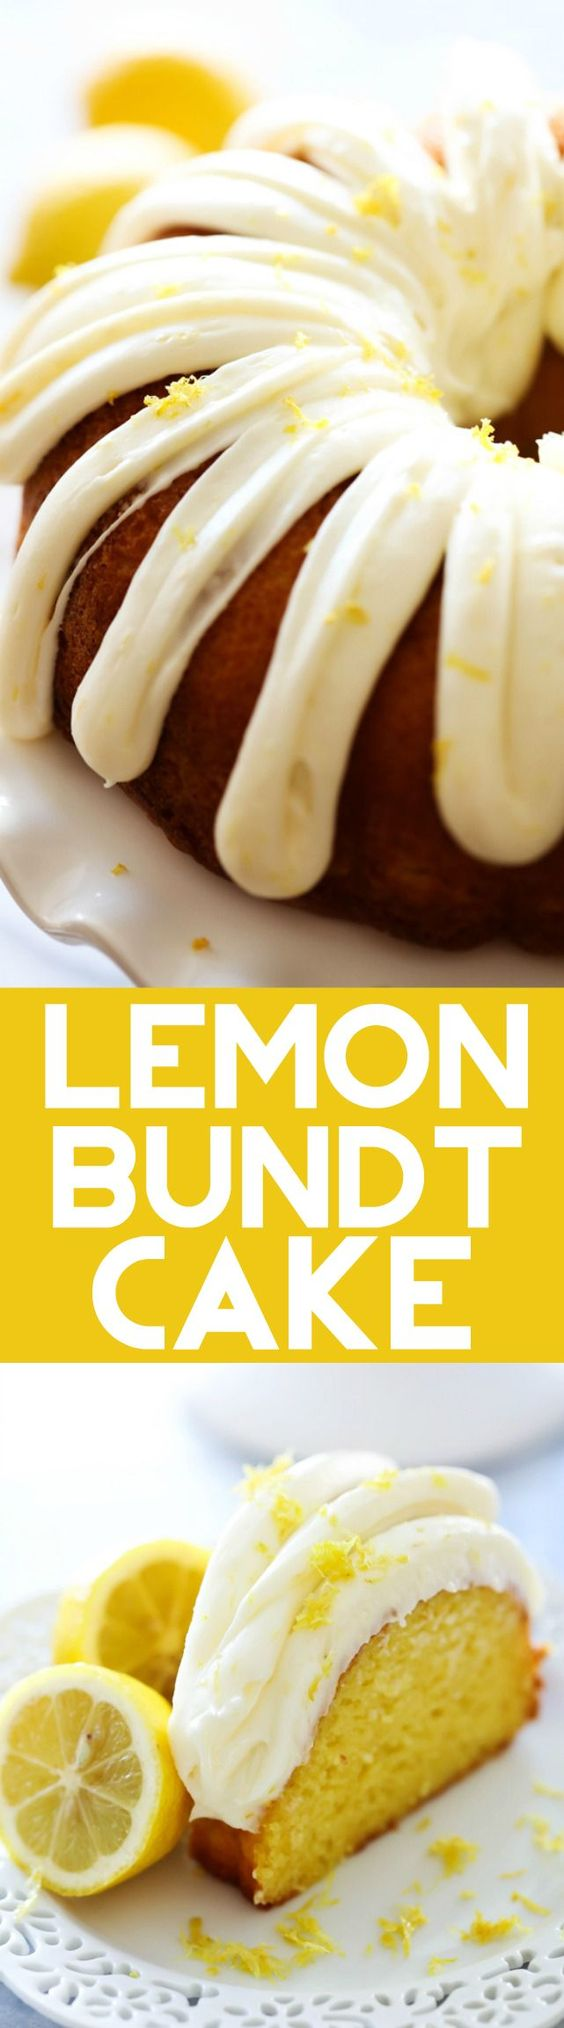 "The BEST Frosted Lemon Bundt Cake Recipe via Chef in Training - ""This Lemon Bundt Cake is bursting with refreshing and delicious flavor! It will be one of the moistest cakes you ever have the pleasure of trying! The frosting is AMAZING!"" The BEST Easy Lemon Desserts and Treats Recipes - Perfect For Easter, Mother's Day Brunch, Bridal or Baby Showers and Pretty Spring and Summer Holiday Party Refreshments! #lemondesserts #lemonrecipes #easylemonrecipes #lemon #lemontreats #easterdesserts #mothersdaydesserts #springdesserts #holidaydesserts #summerdesserts"